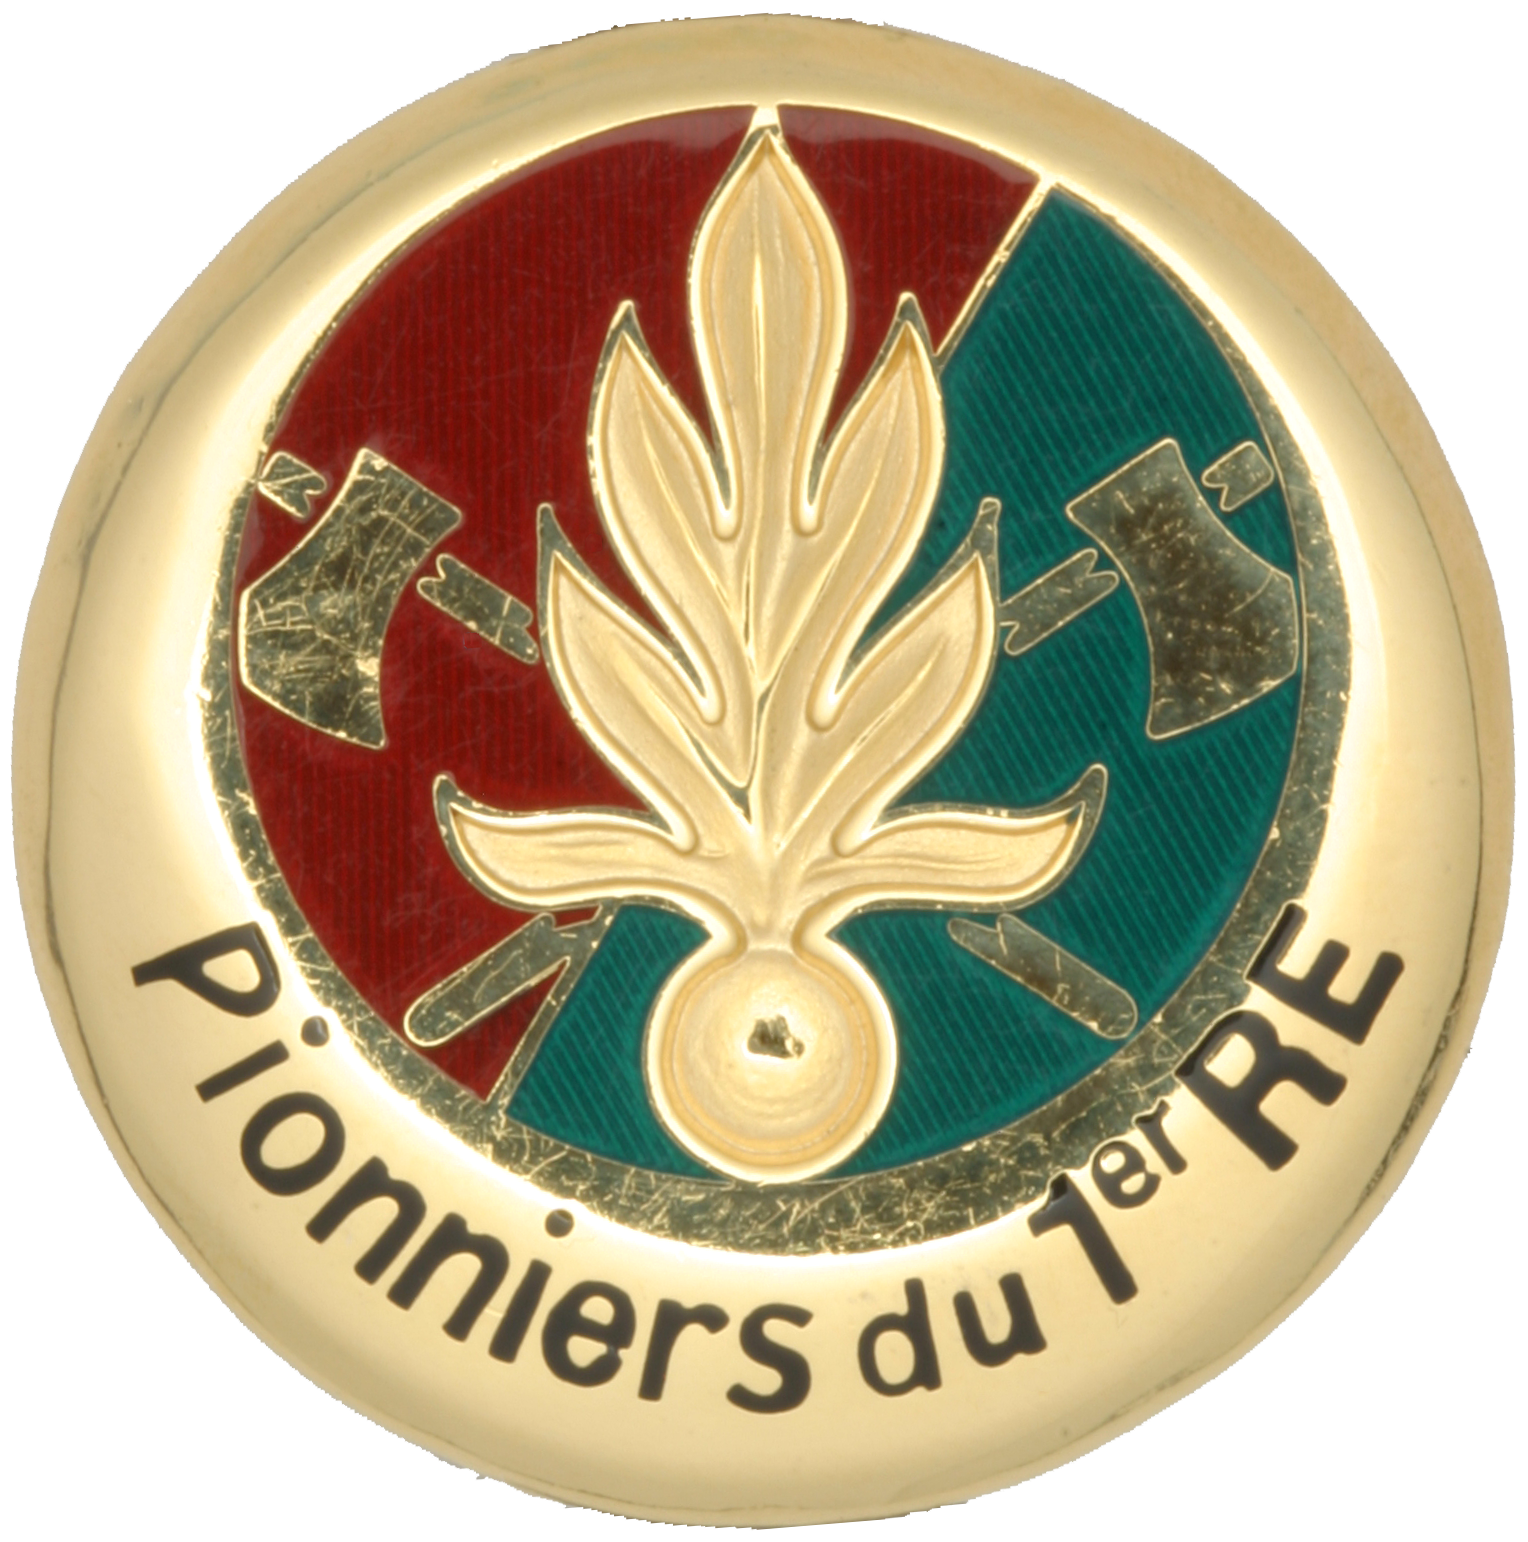 Foreign Legion Pioneers (Pionniers) - Wikipedia